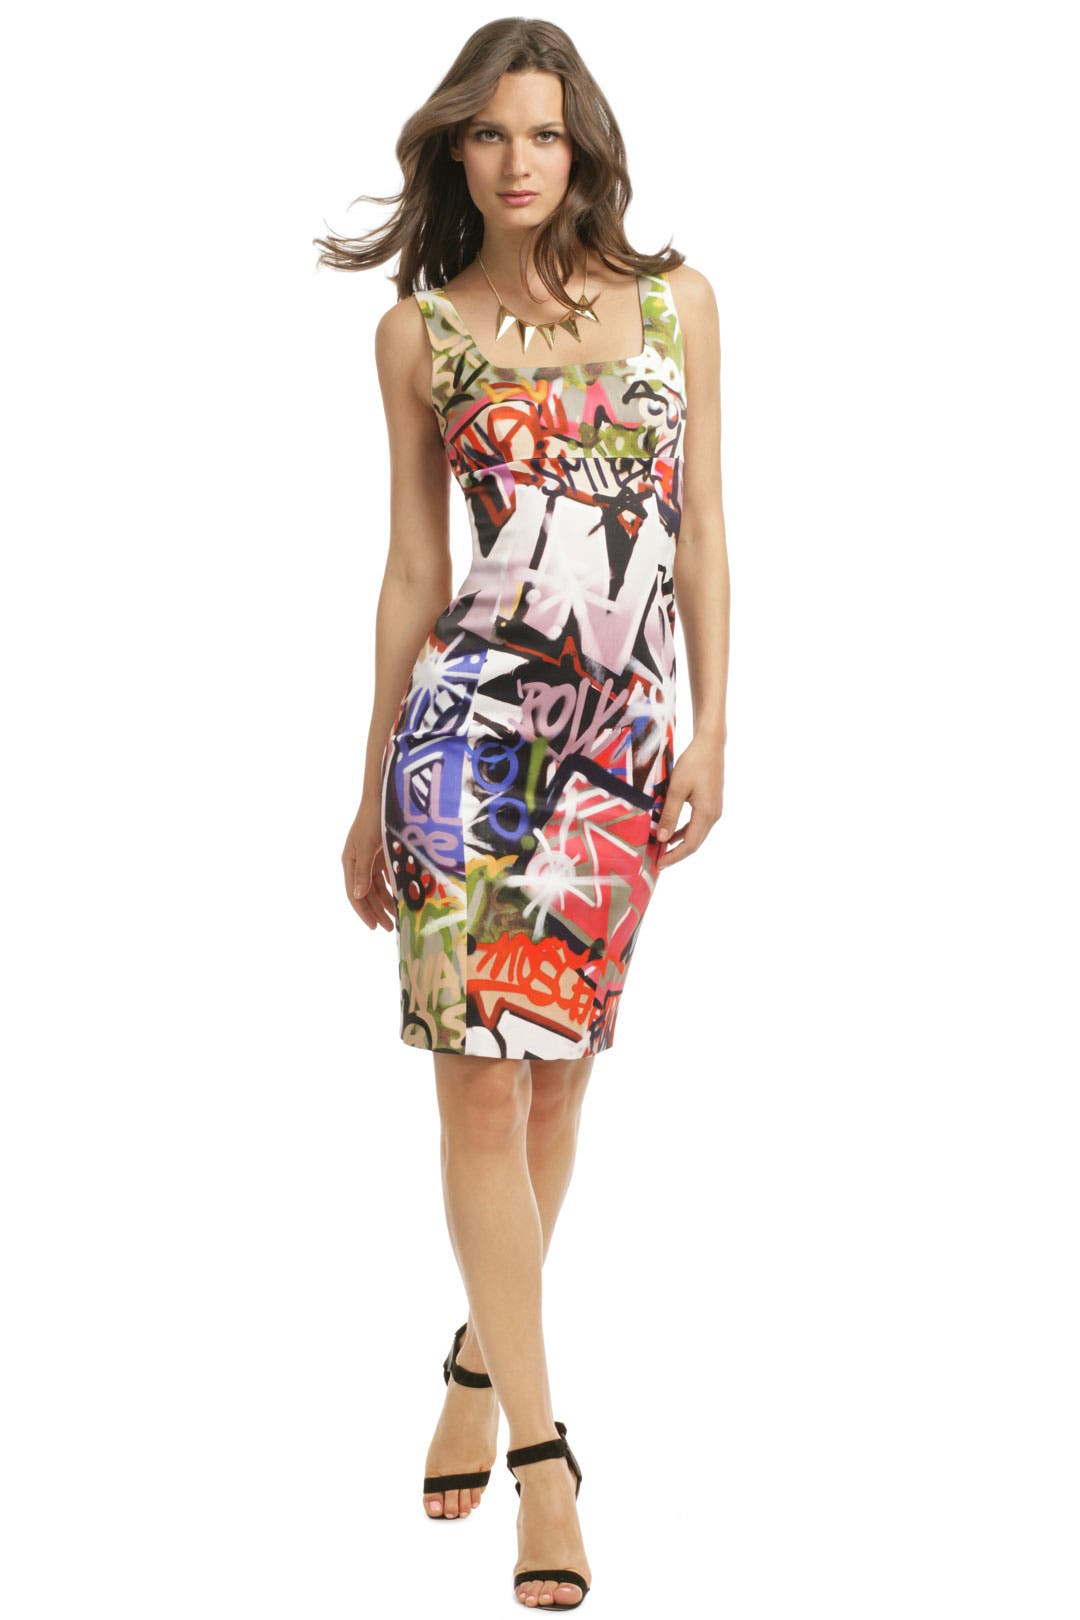 Graffiti Art Sheath by Moschino